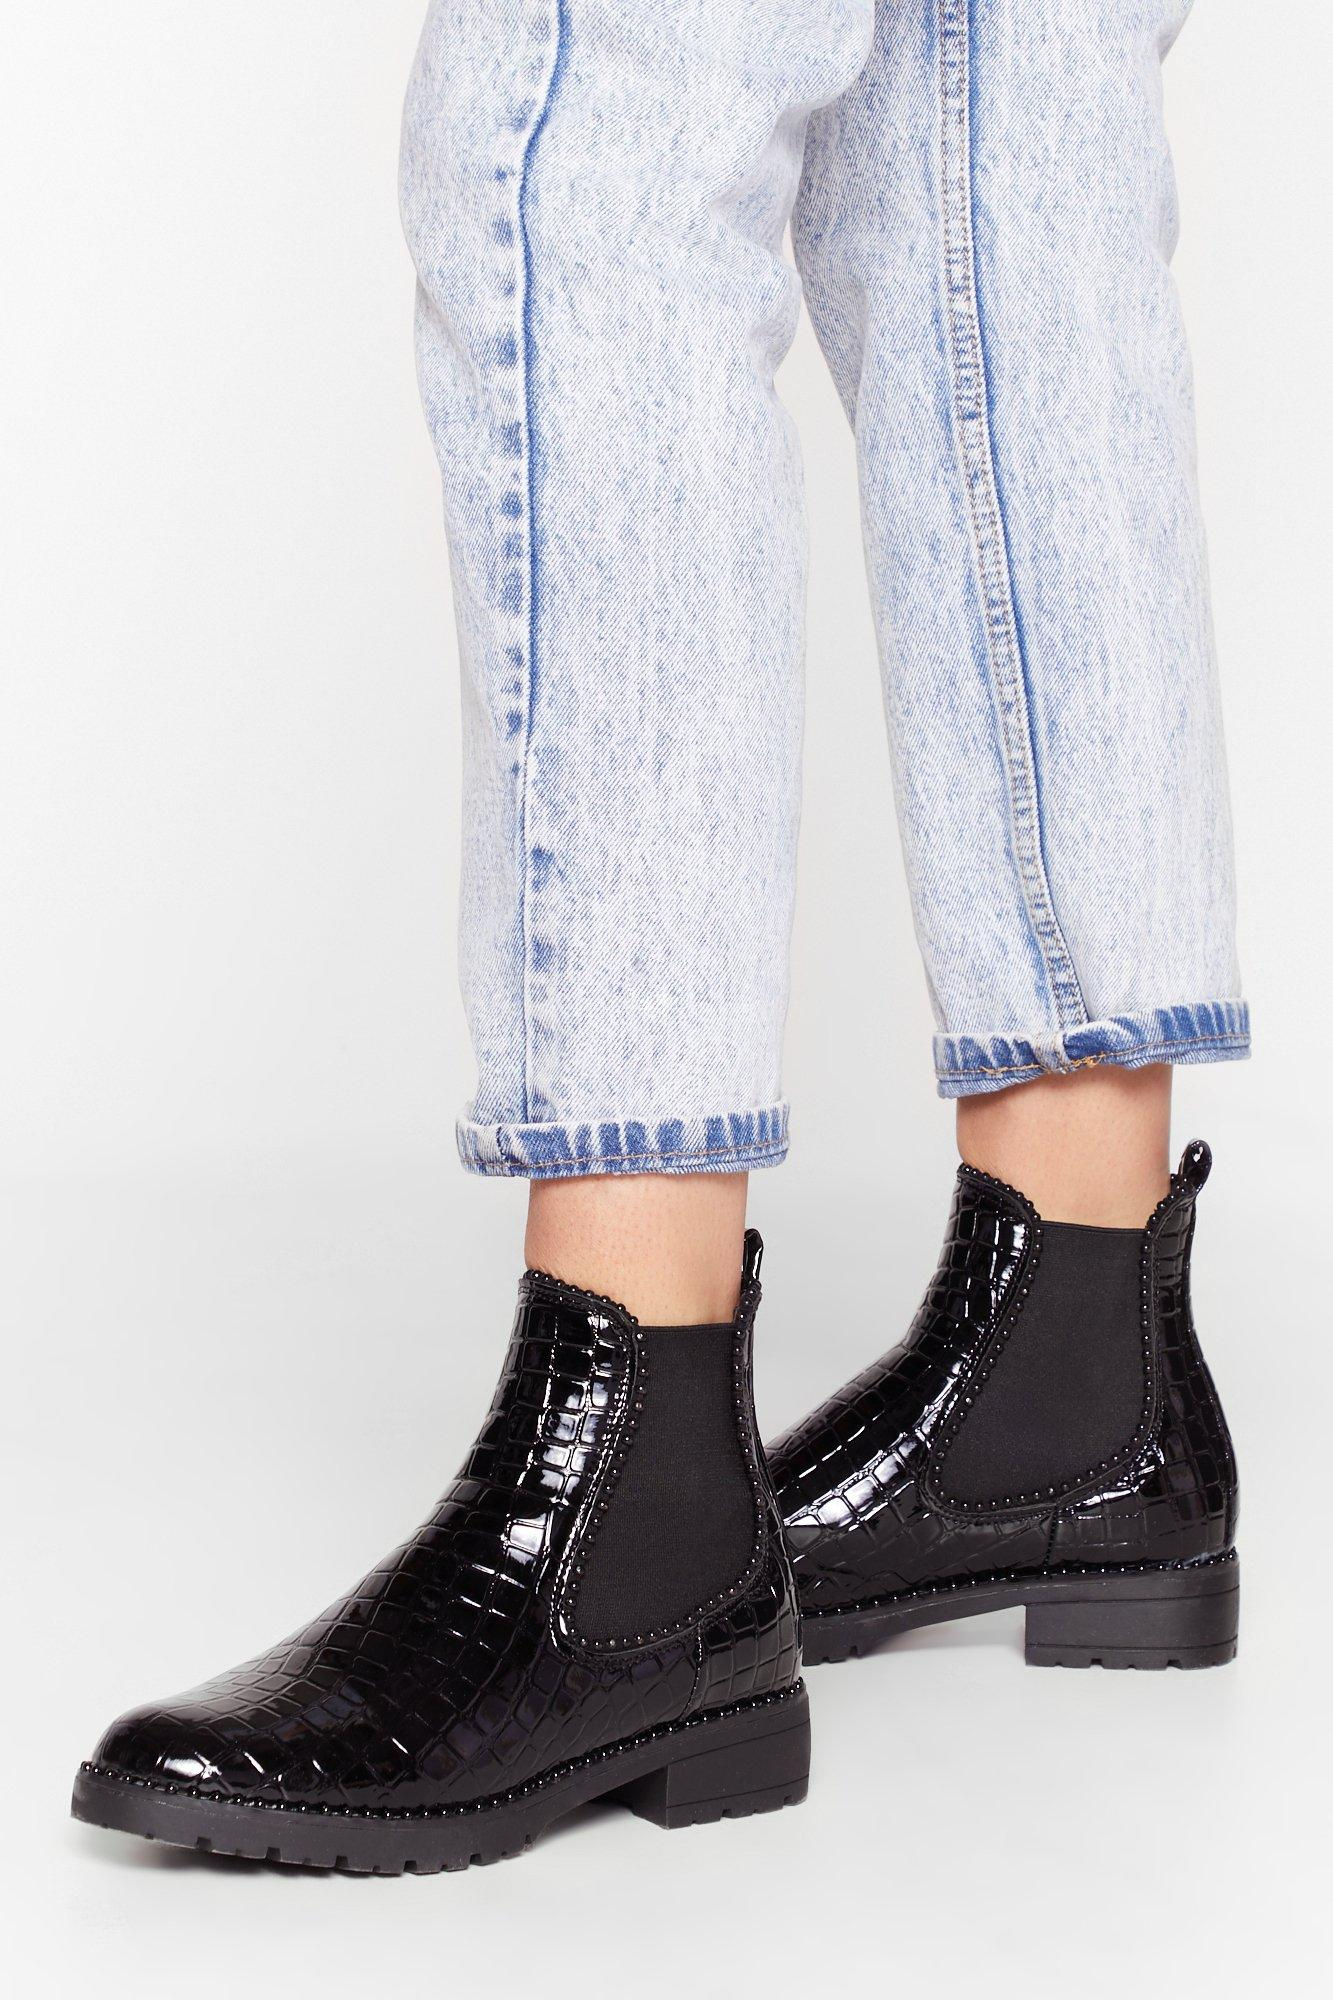 Image of You Croc Potential Patent Faux Leather Chelsea Boots